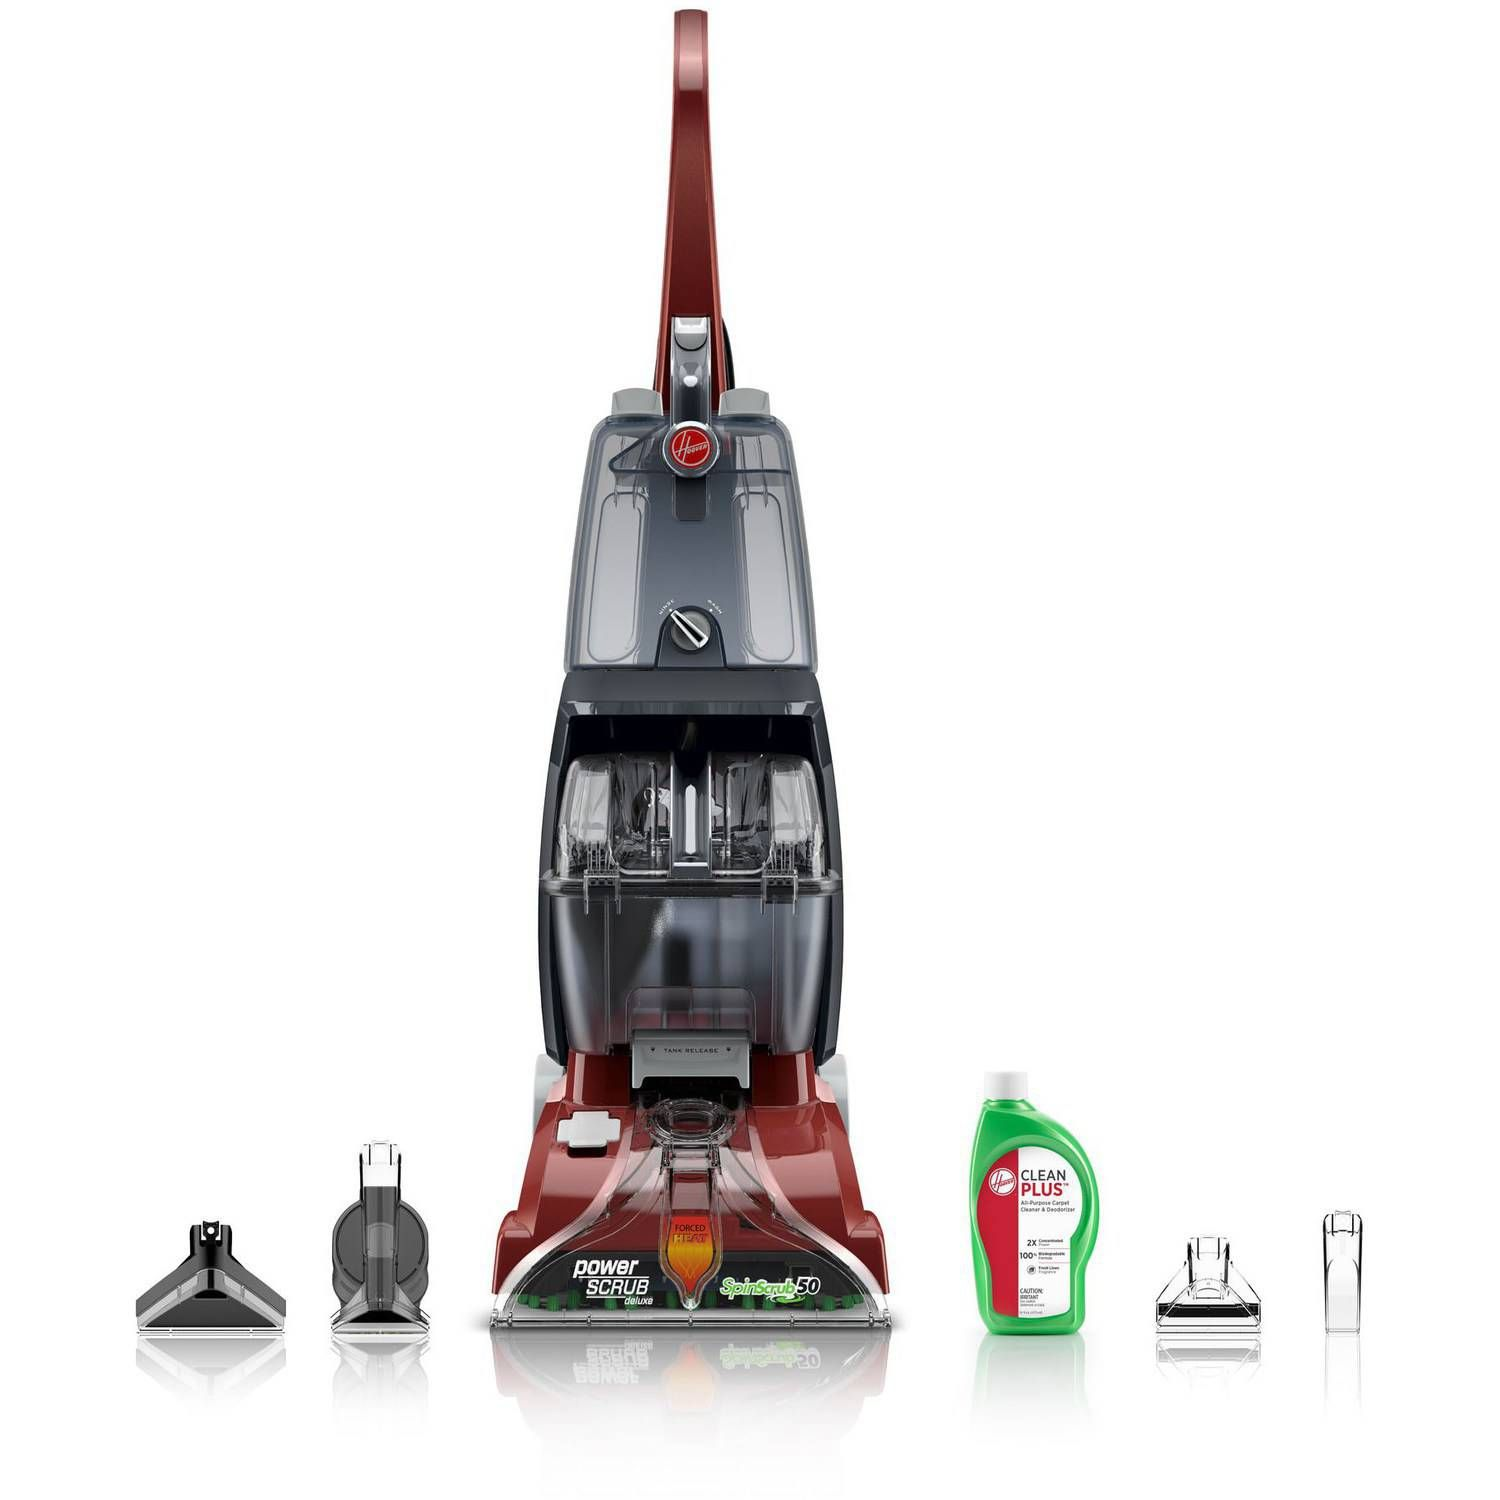 Hoover Power Scrub Deluxe Carpet Washer 99 Carpet Cleaning Machines Carpet Cleaning Solution